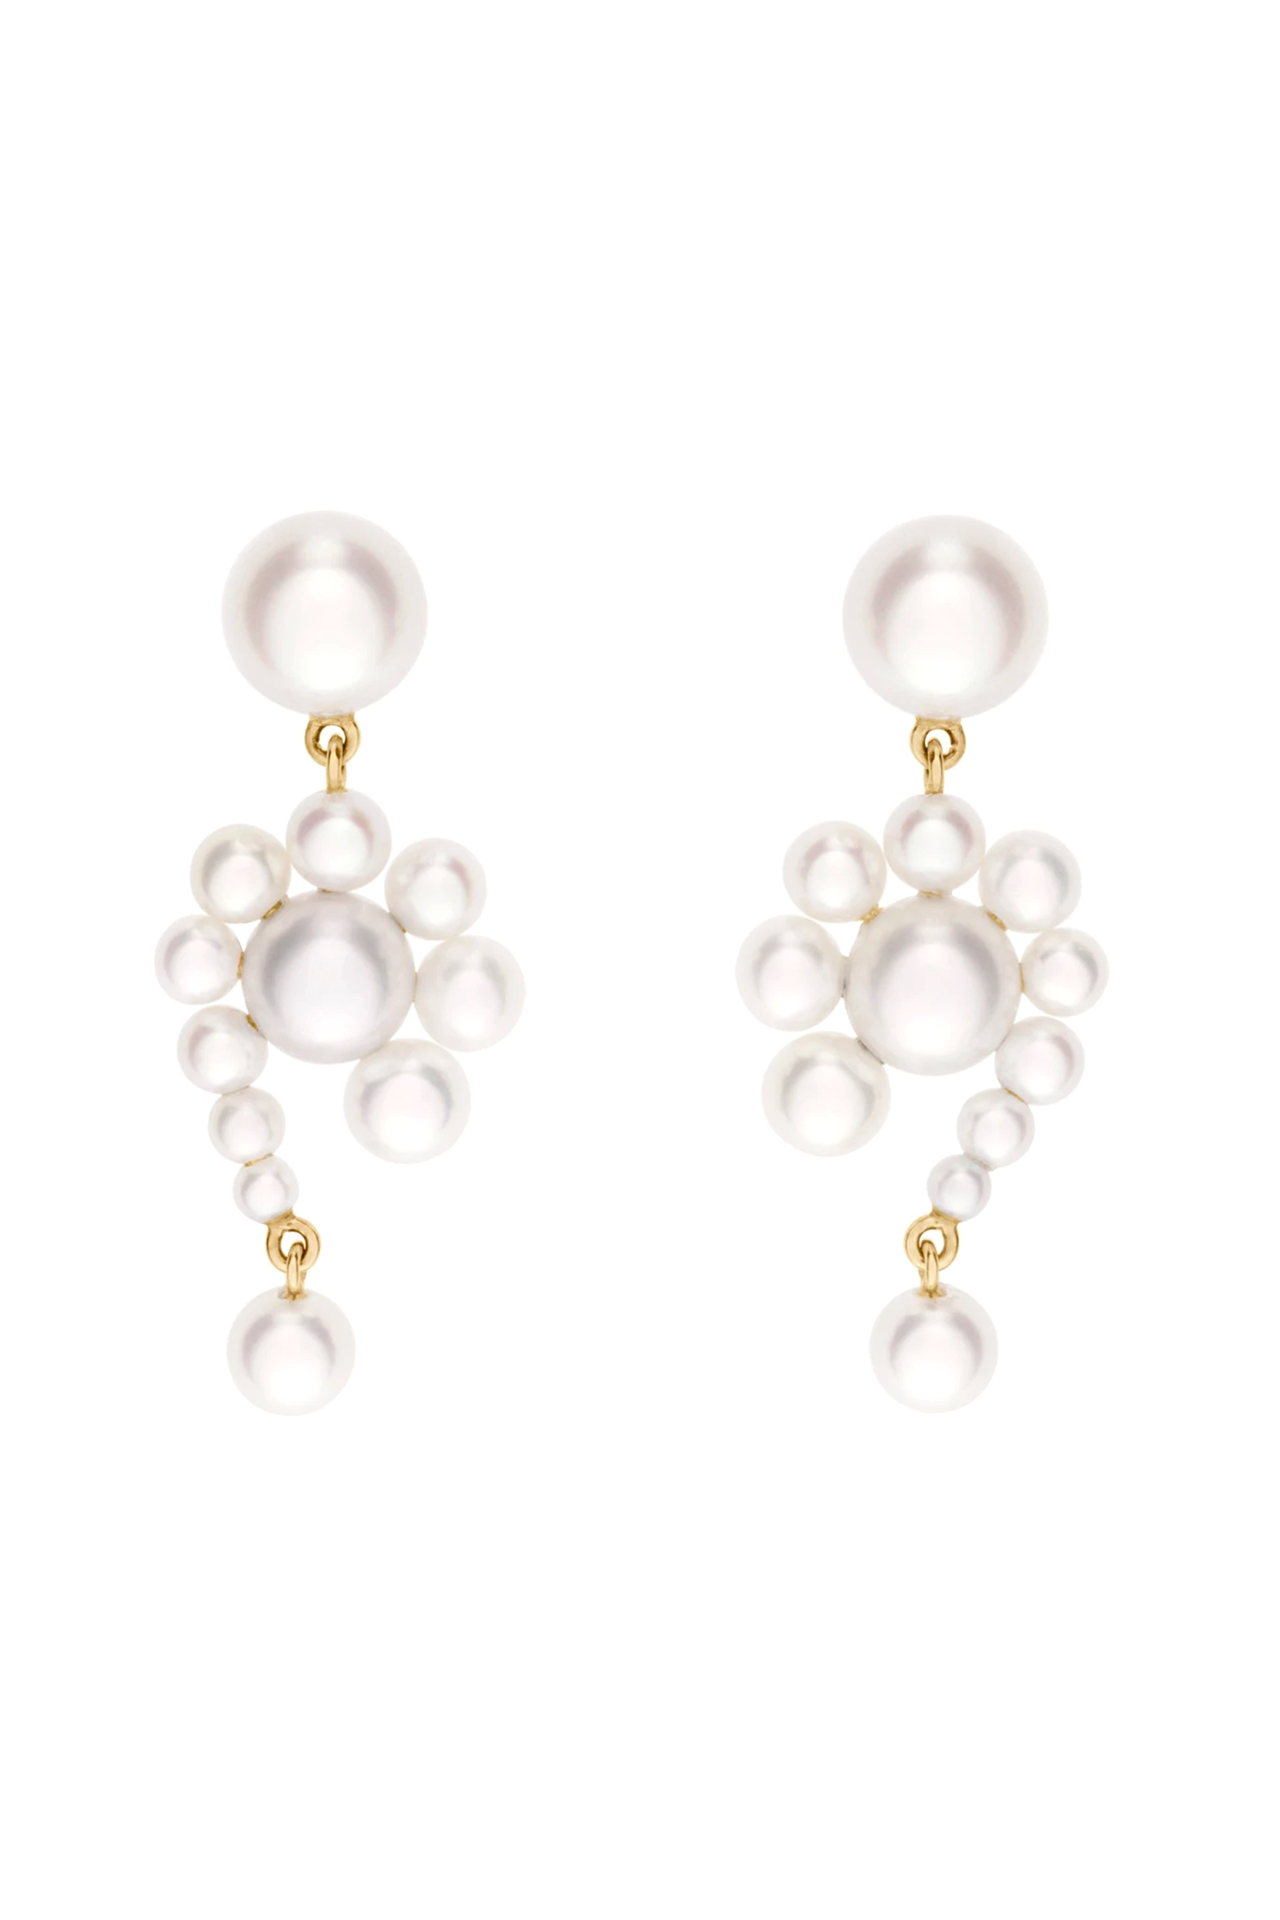 Escargot Perle 14K Pearl Earrings